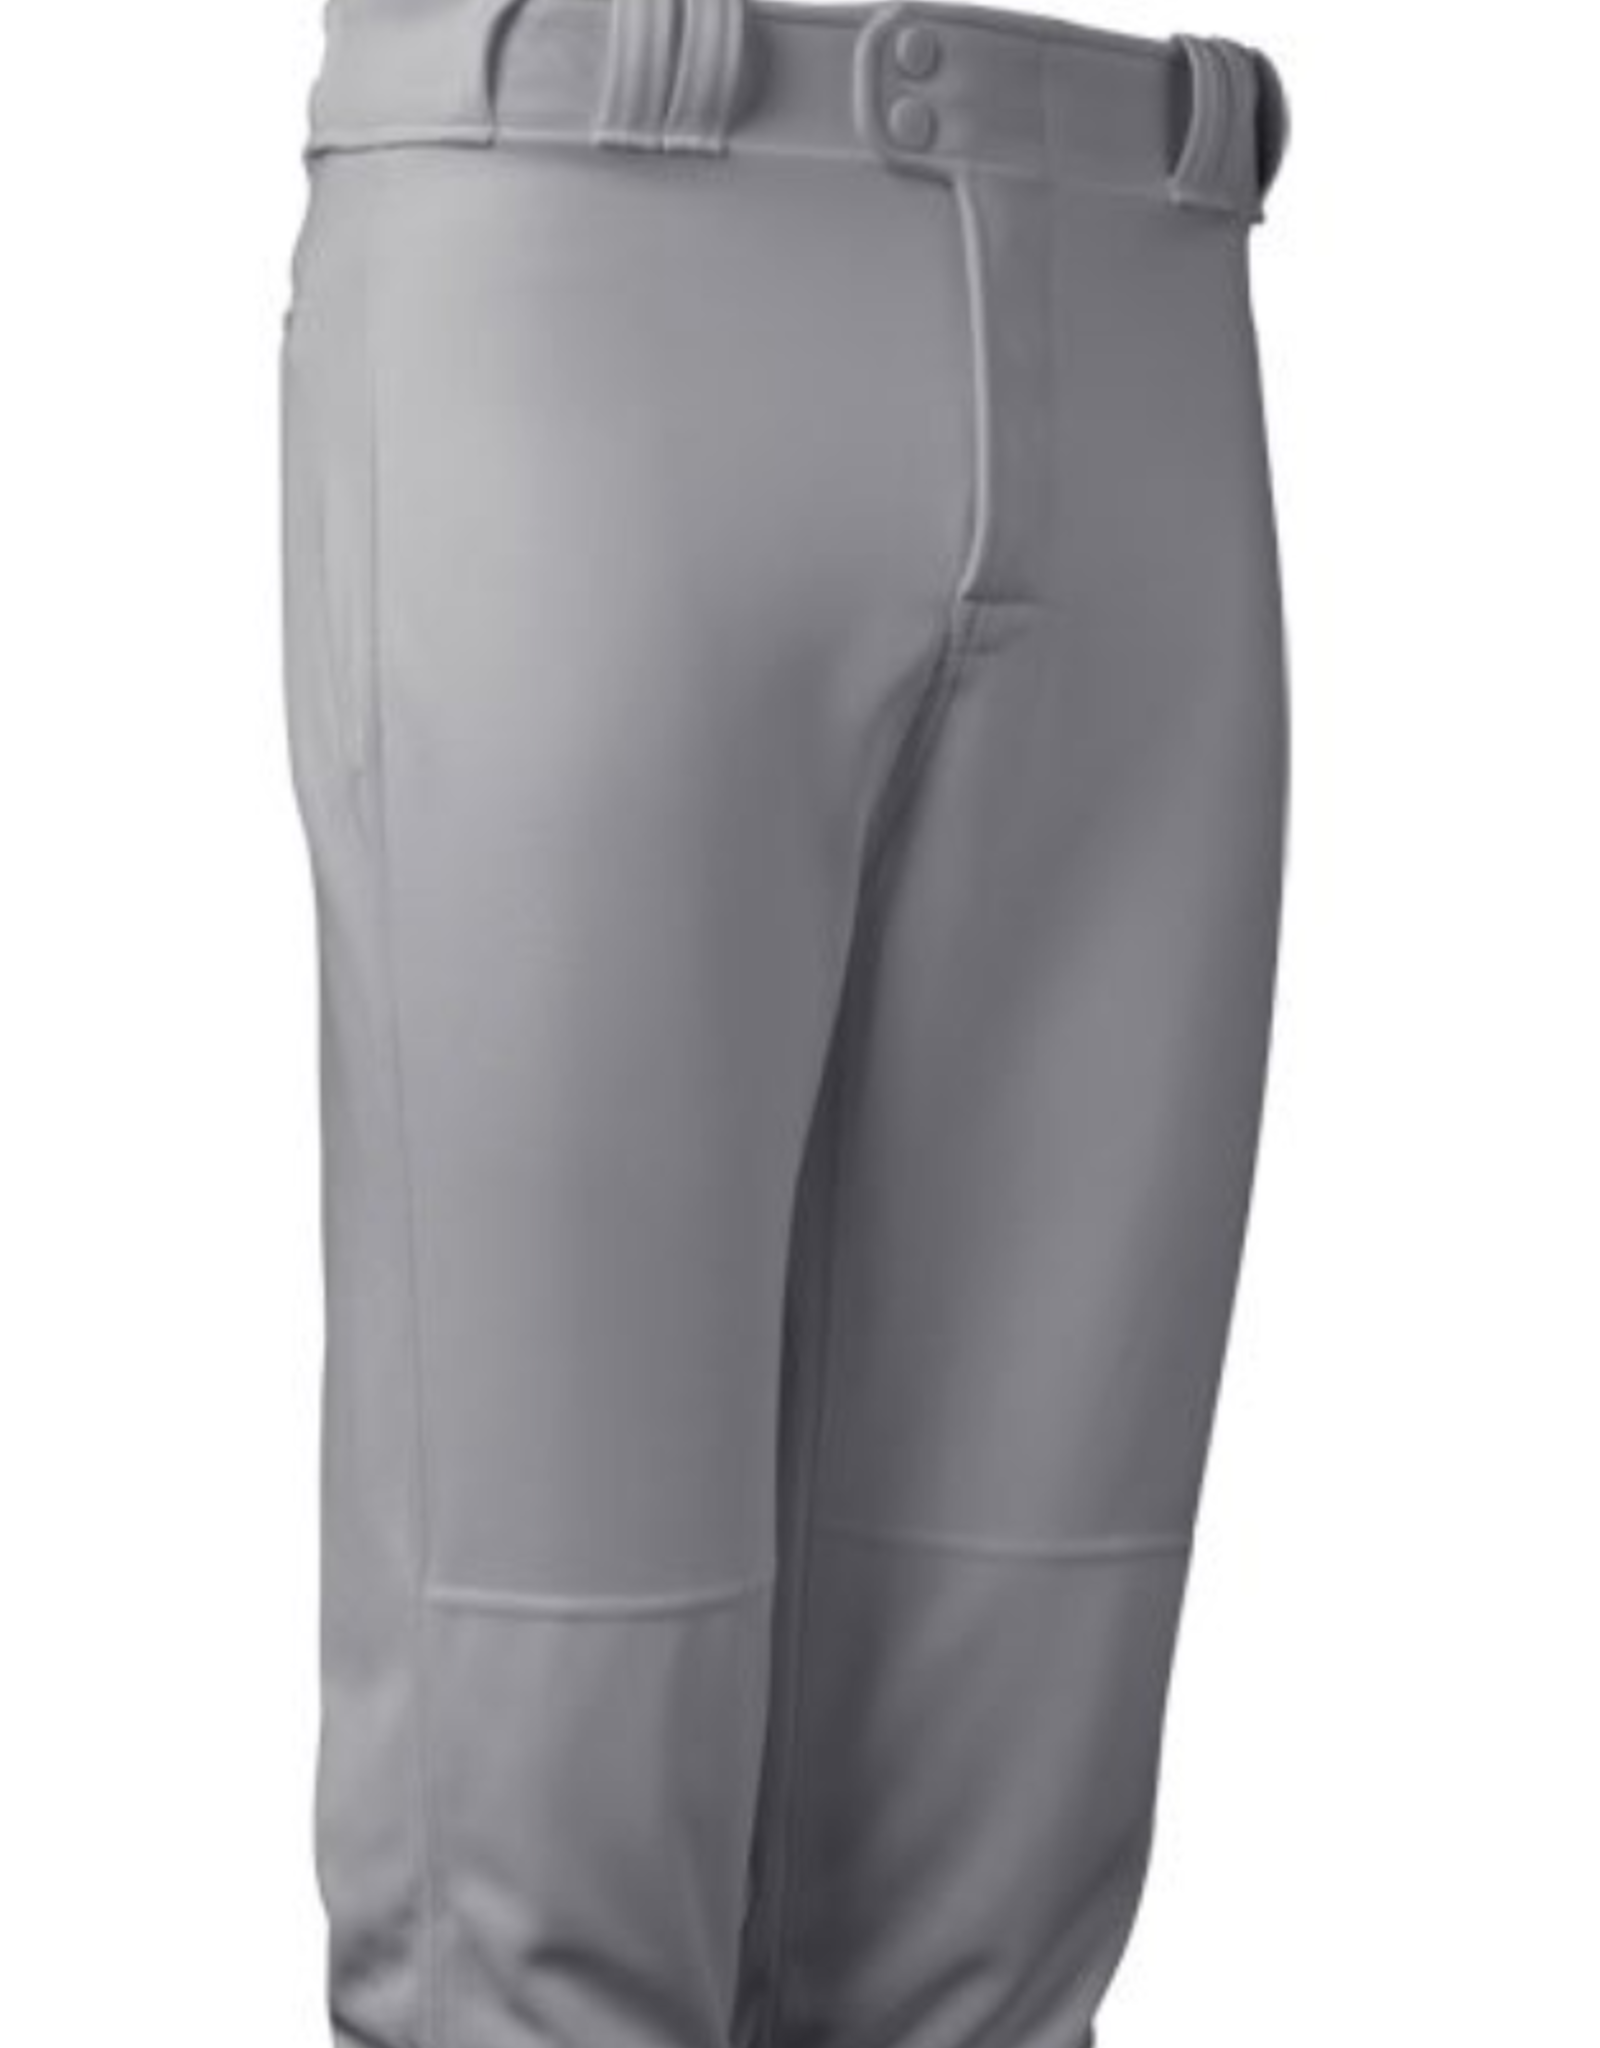 Rawlings Rawlings youth baseball knickers